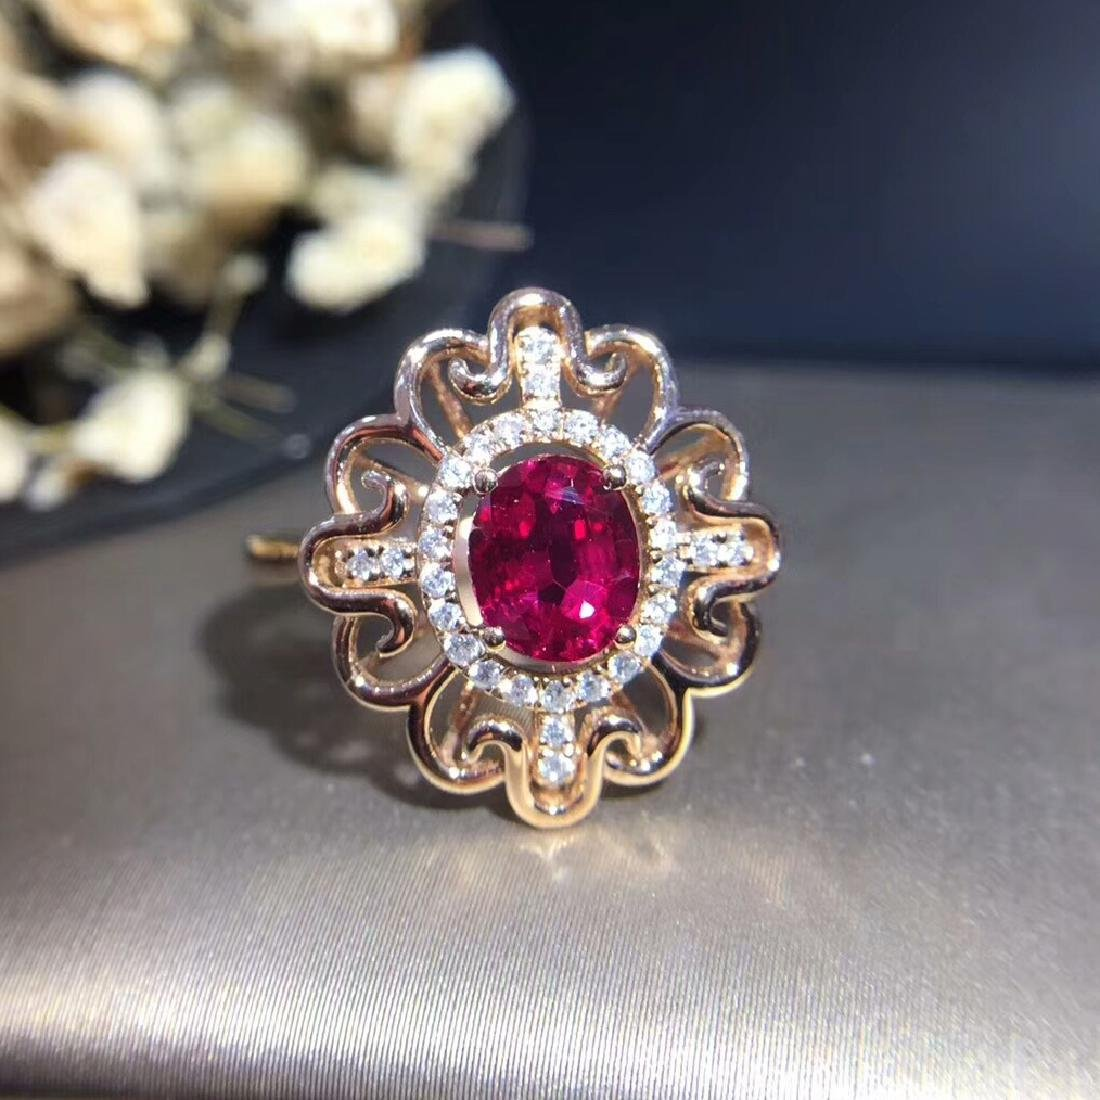 0.95ct Ruby Ring in 18kt white Gold